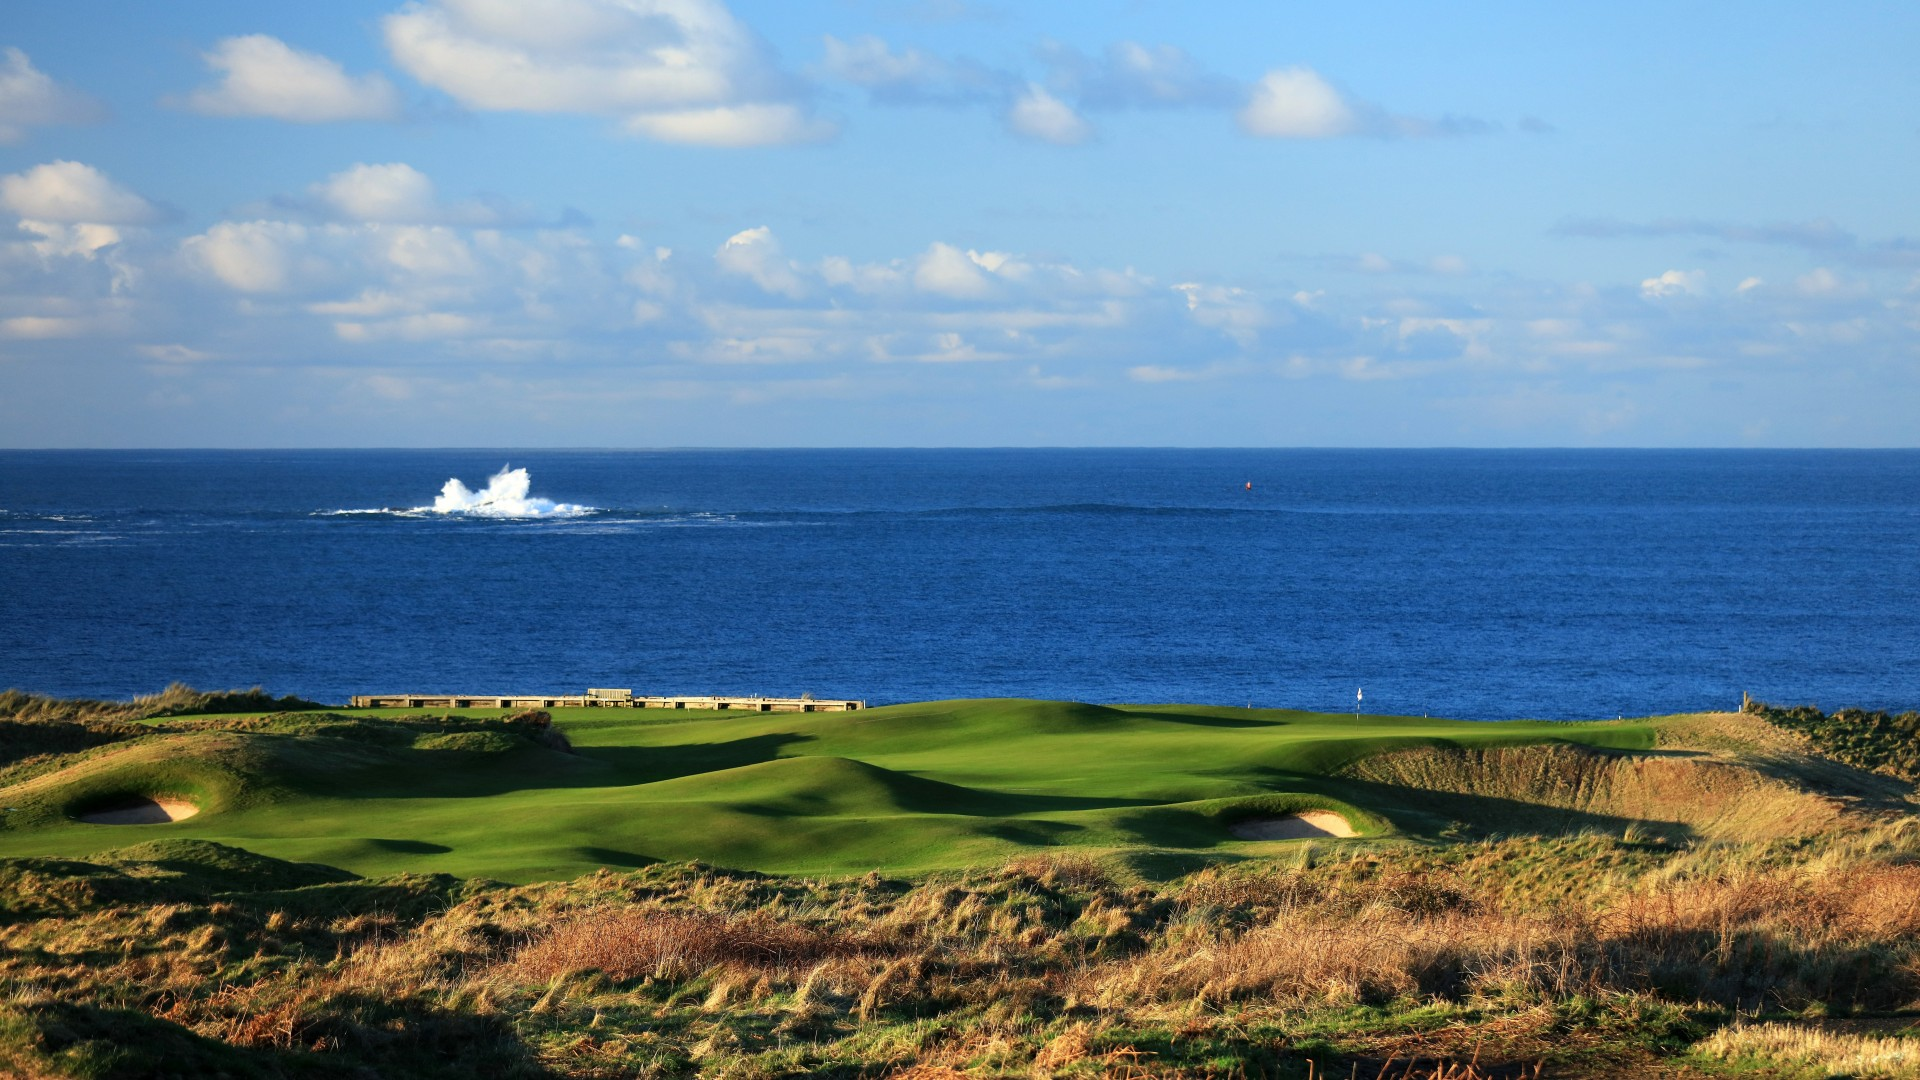 Royal Portrush Golf Club, 5th hole White Rocks, The Open 2019